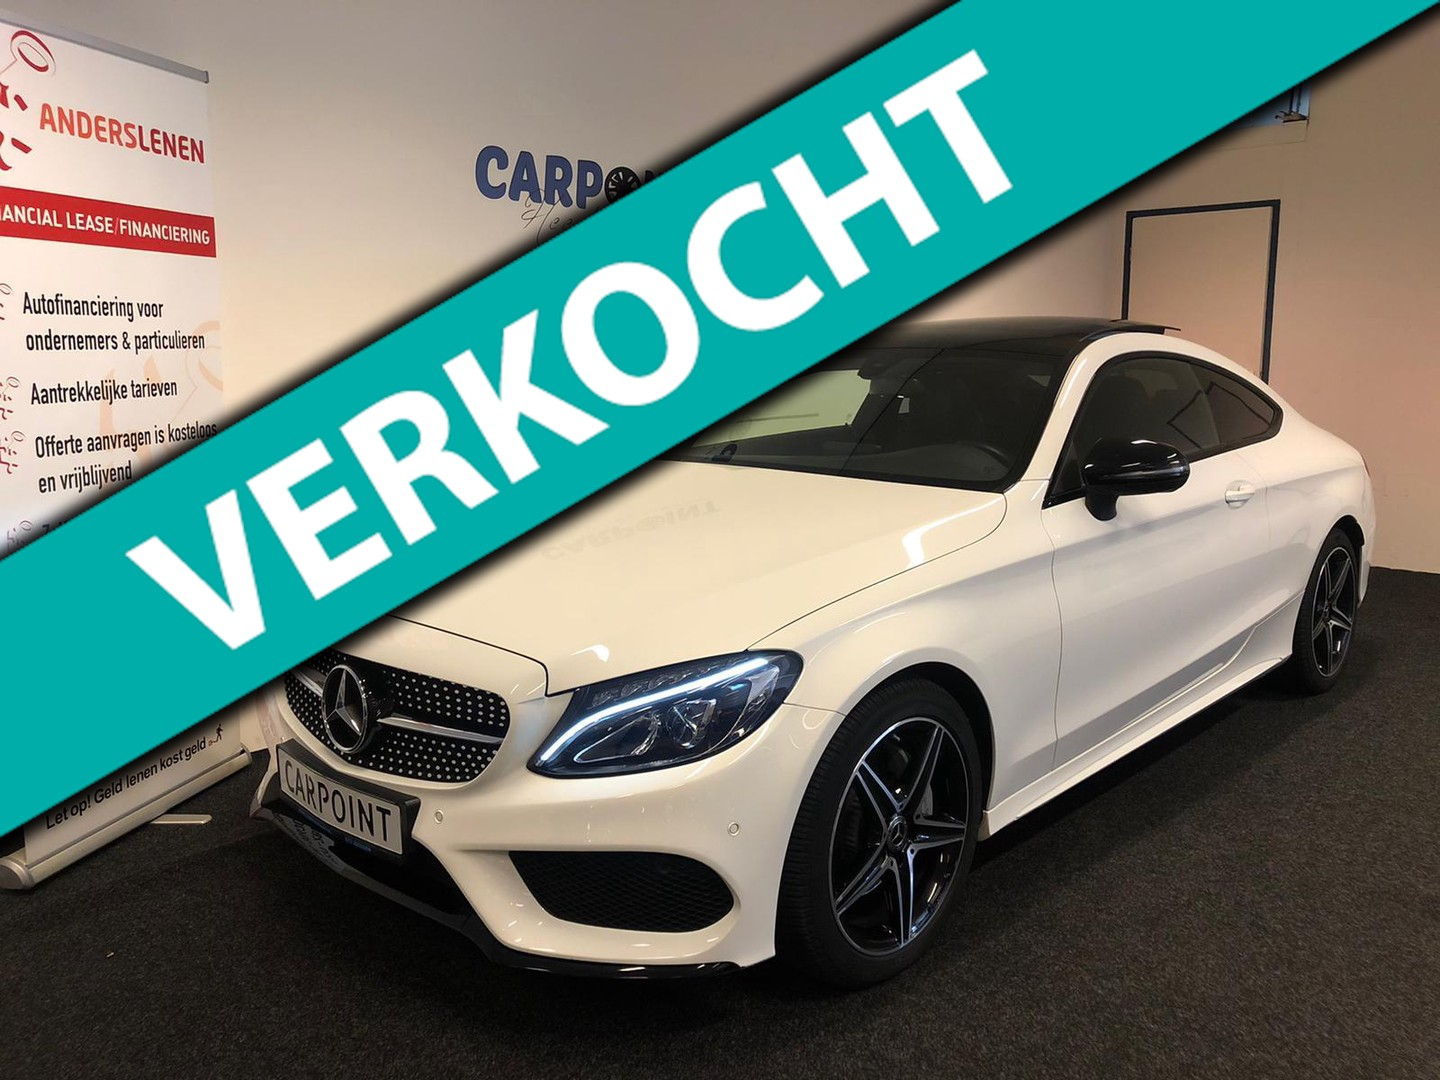 Mercedes-benz C-klasse Coupé 180 premium pack 2018 amg*night*camera*panodak*sfeer verlichting*vol